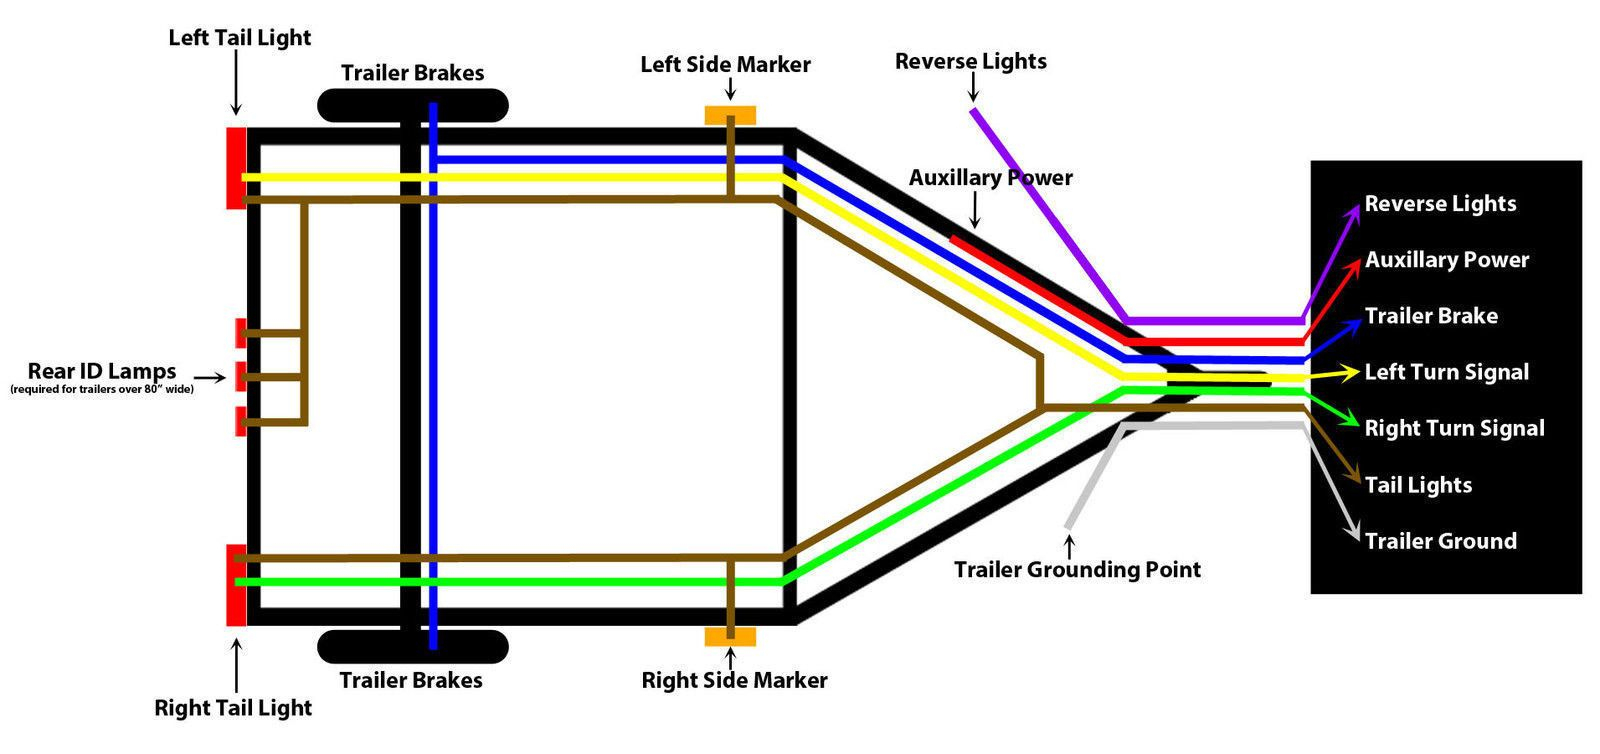 Trailers Over 80 Wire Diagram - Google Search | Tiny House Trailer - Trailer Wiring 4 Wire Diagram